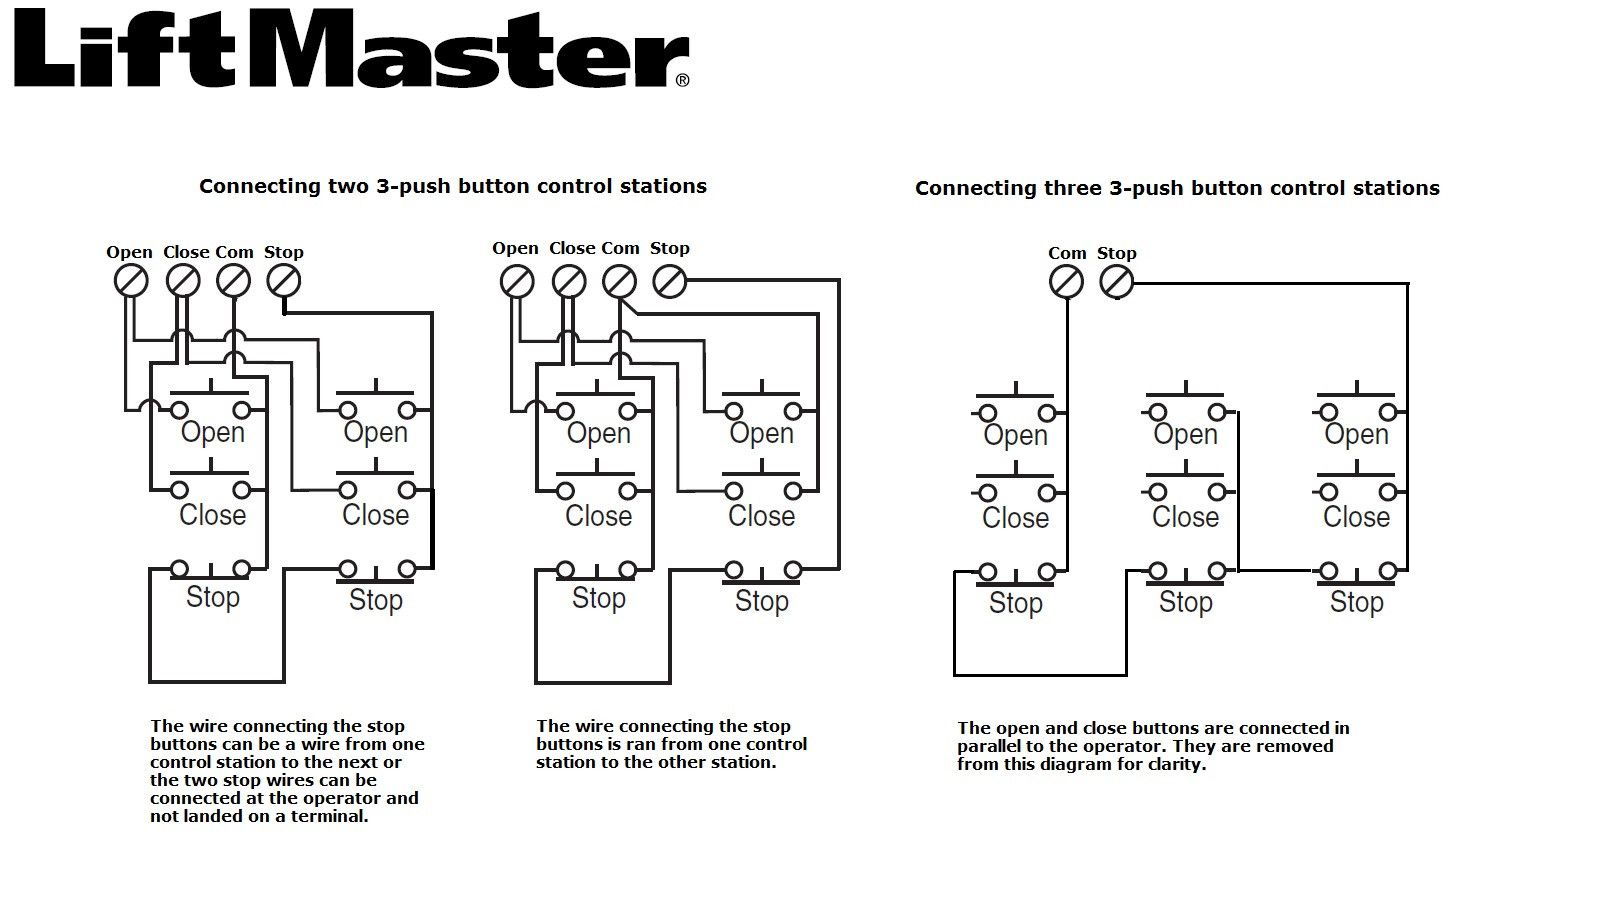 [DIAGRAM_3NM]  How to wire multiple 3-button control stations | LiftMaster Partner Portal  Support Center | Open Close Stop Switch Wiring Diagram |  | LiftMaster Support